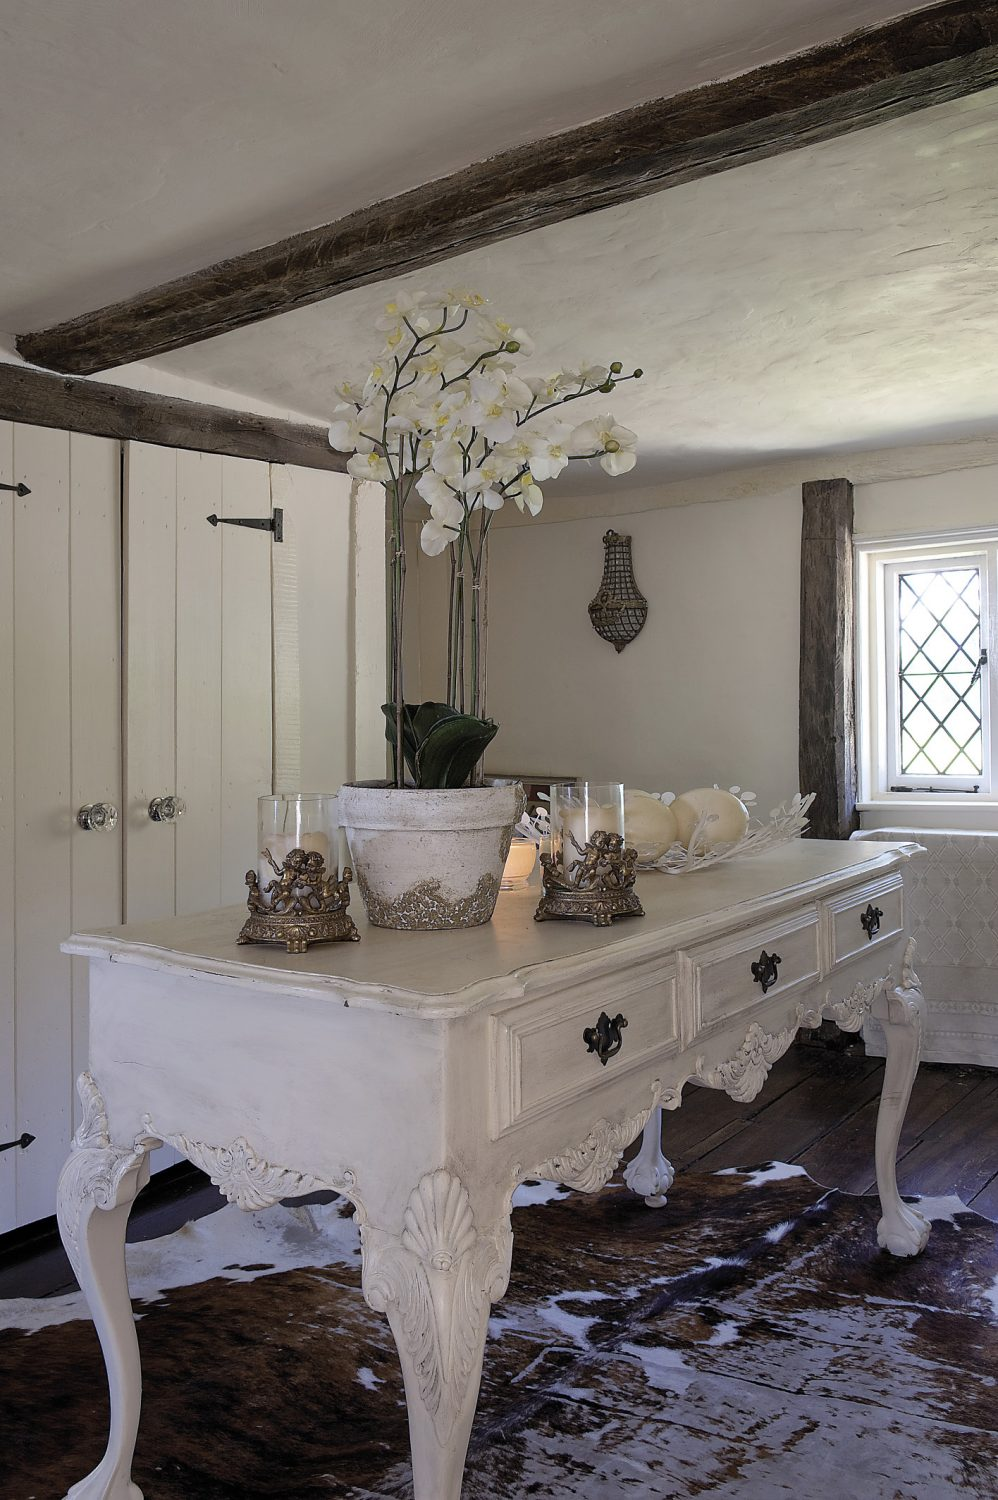 The landing is a surprisingly large space and Andrew has cleverly added an element of drama by keeping the wooden floor uncluttered apart from a flamboyantly carved table placed in the centre of the room. A wall of built-in wardrobes enables the area to function as Andrew's dressing room